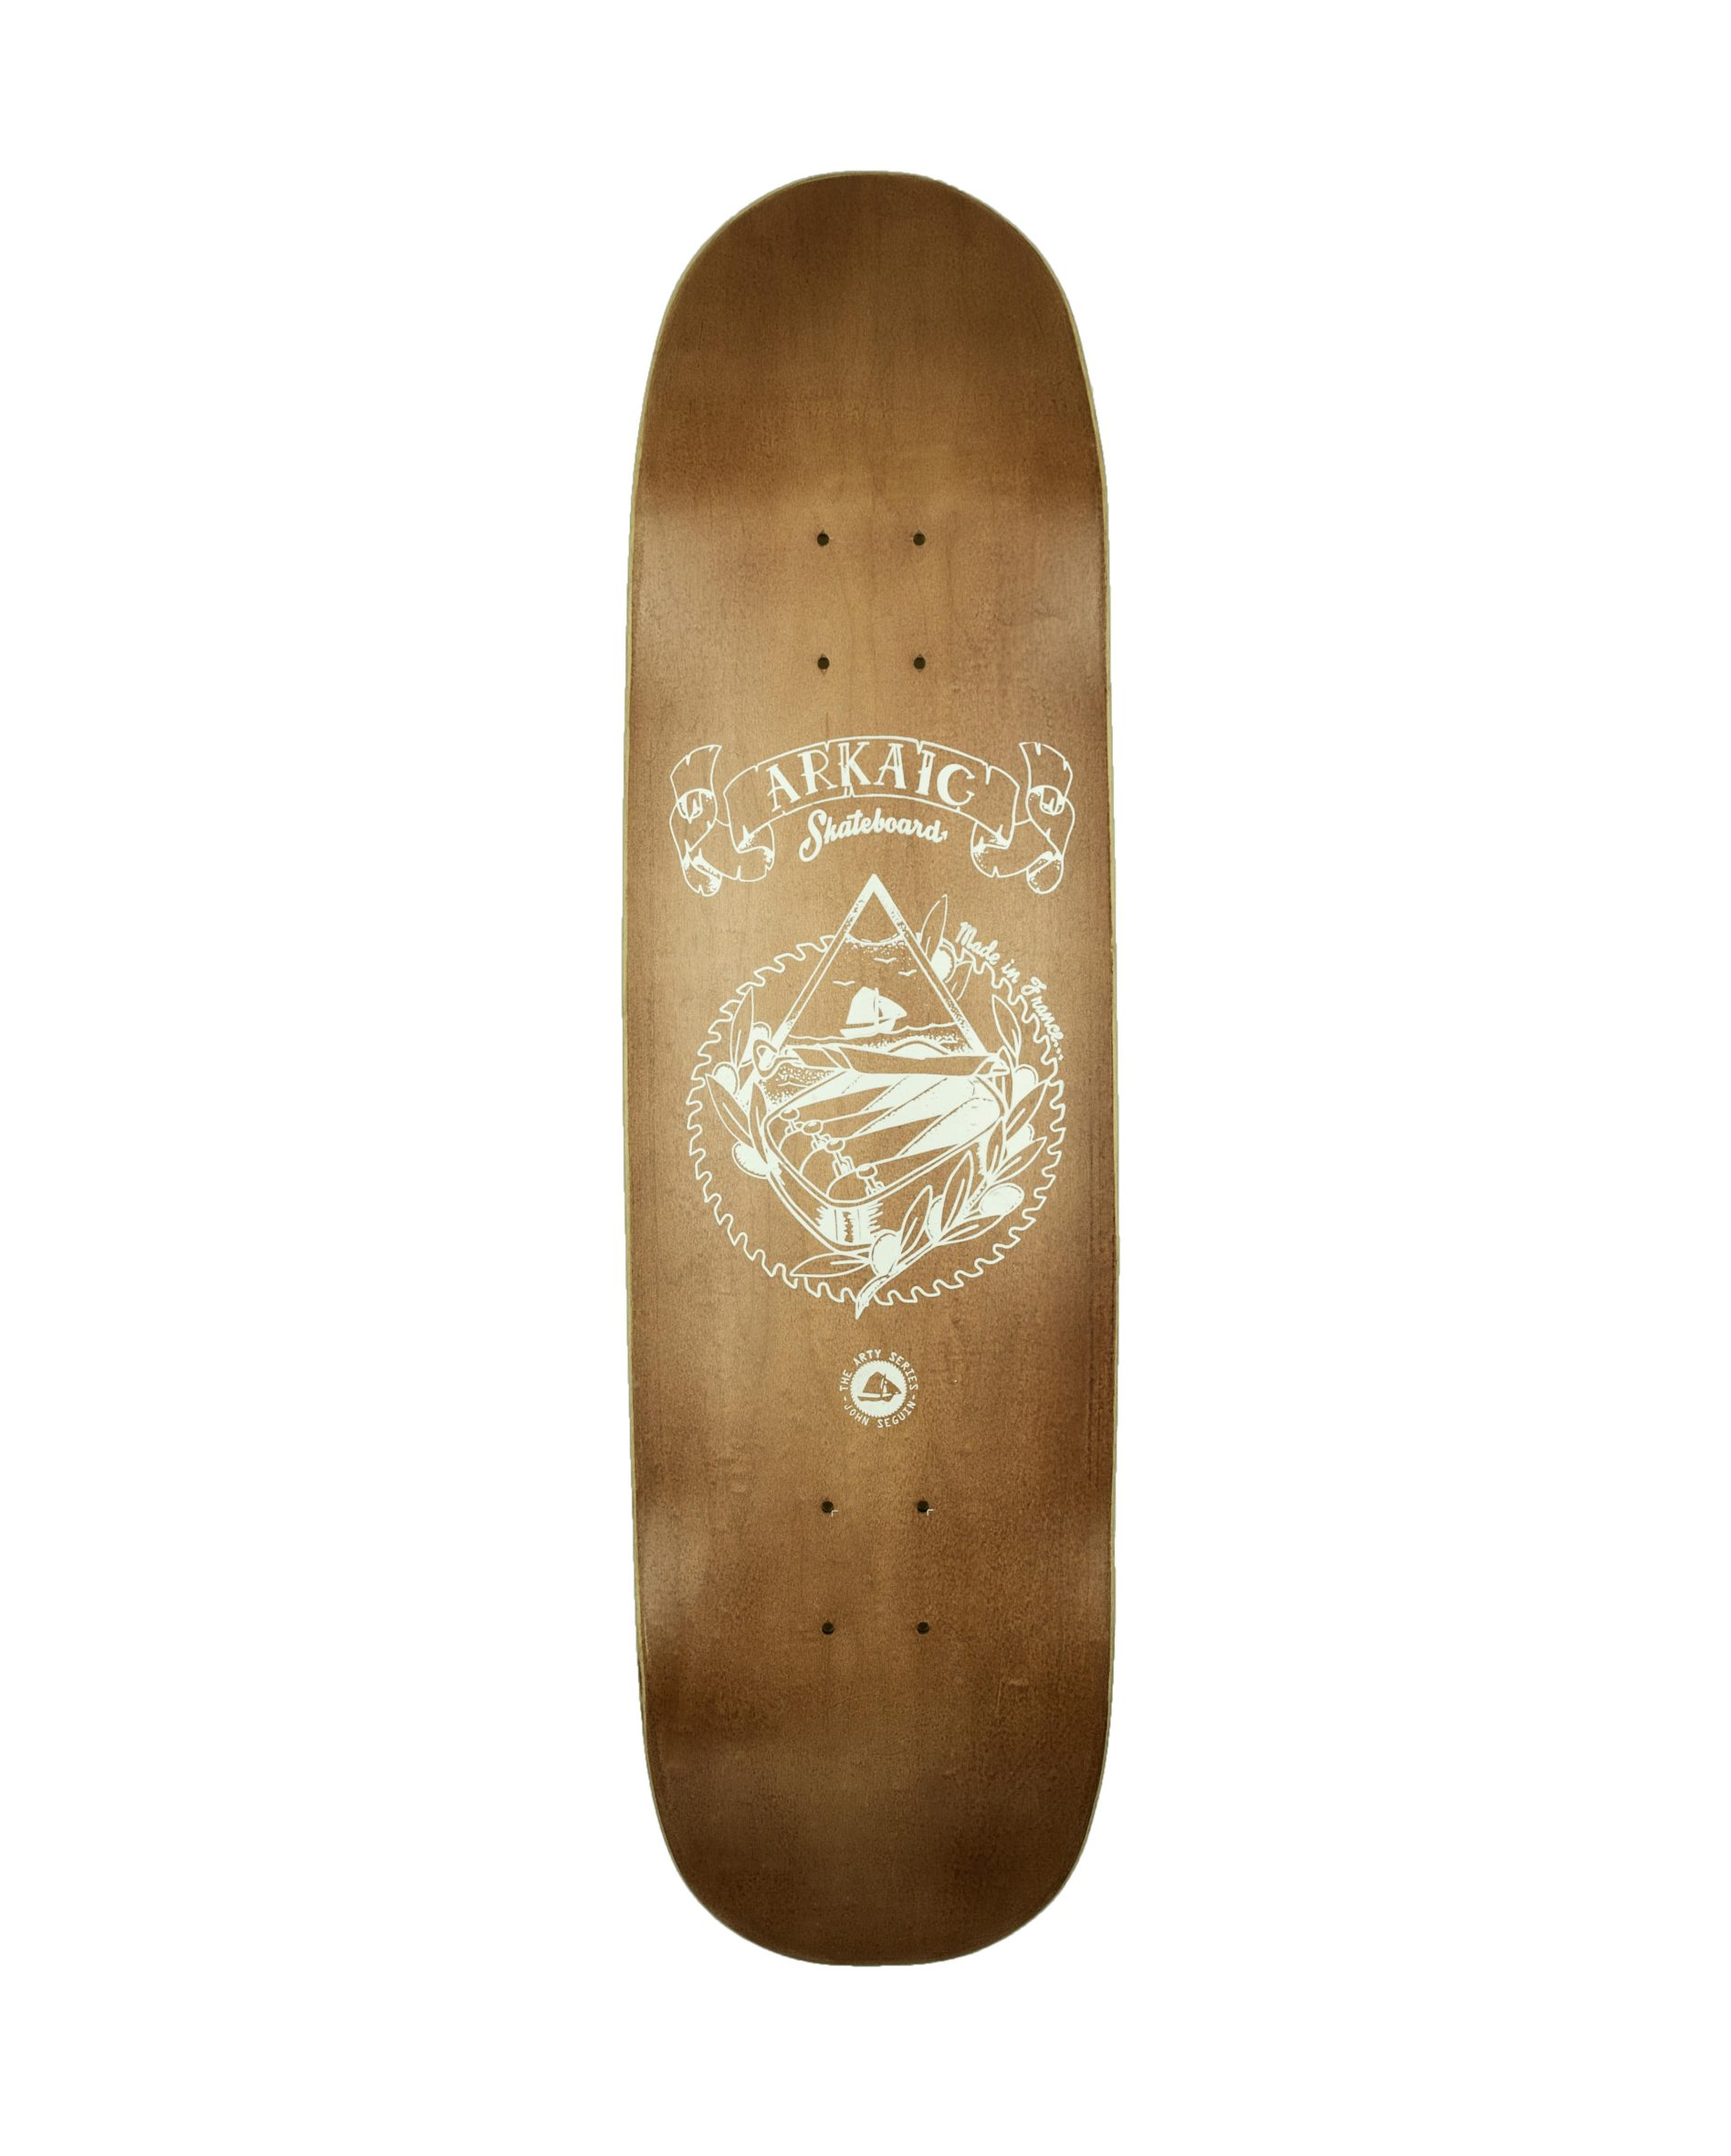 "Rock N Roots 8.4"" SkateShop Lyon Cruiser Arkaic Skateboard"